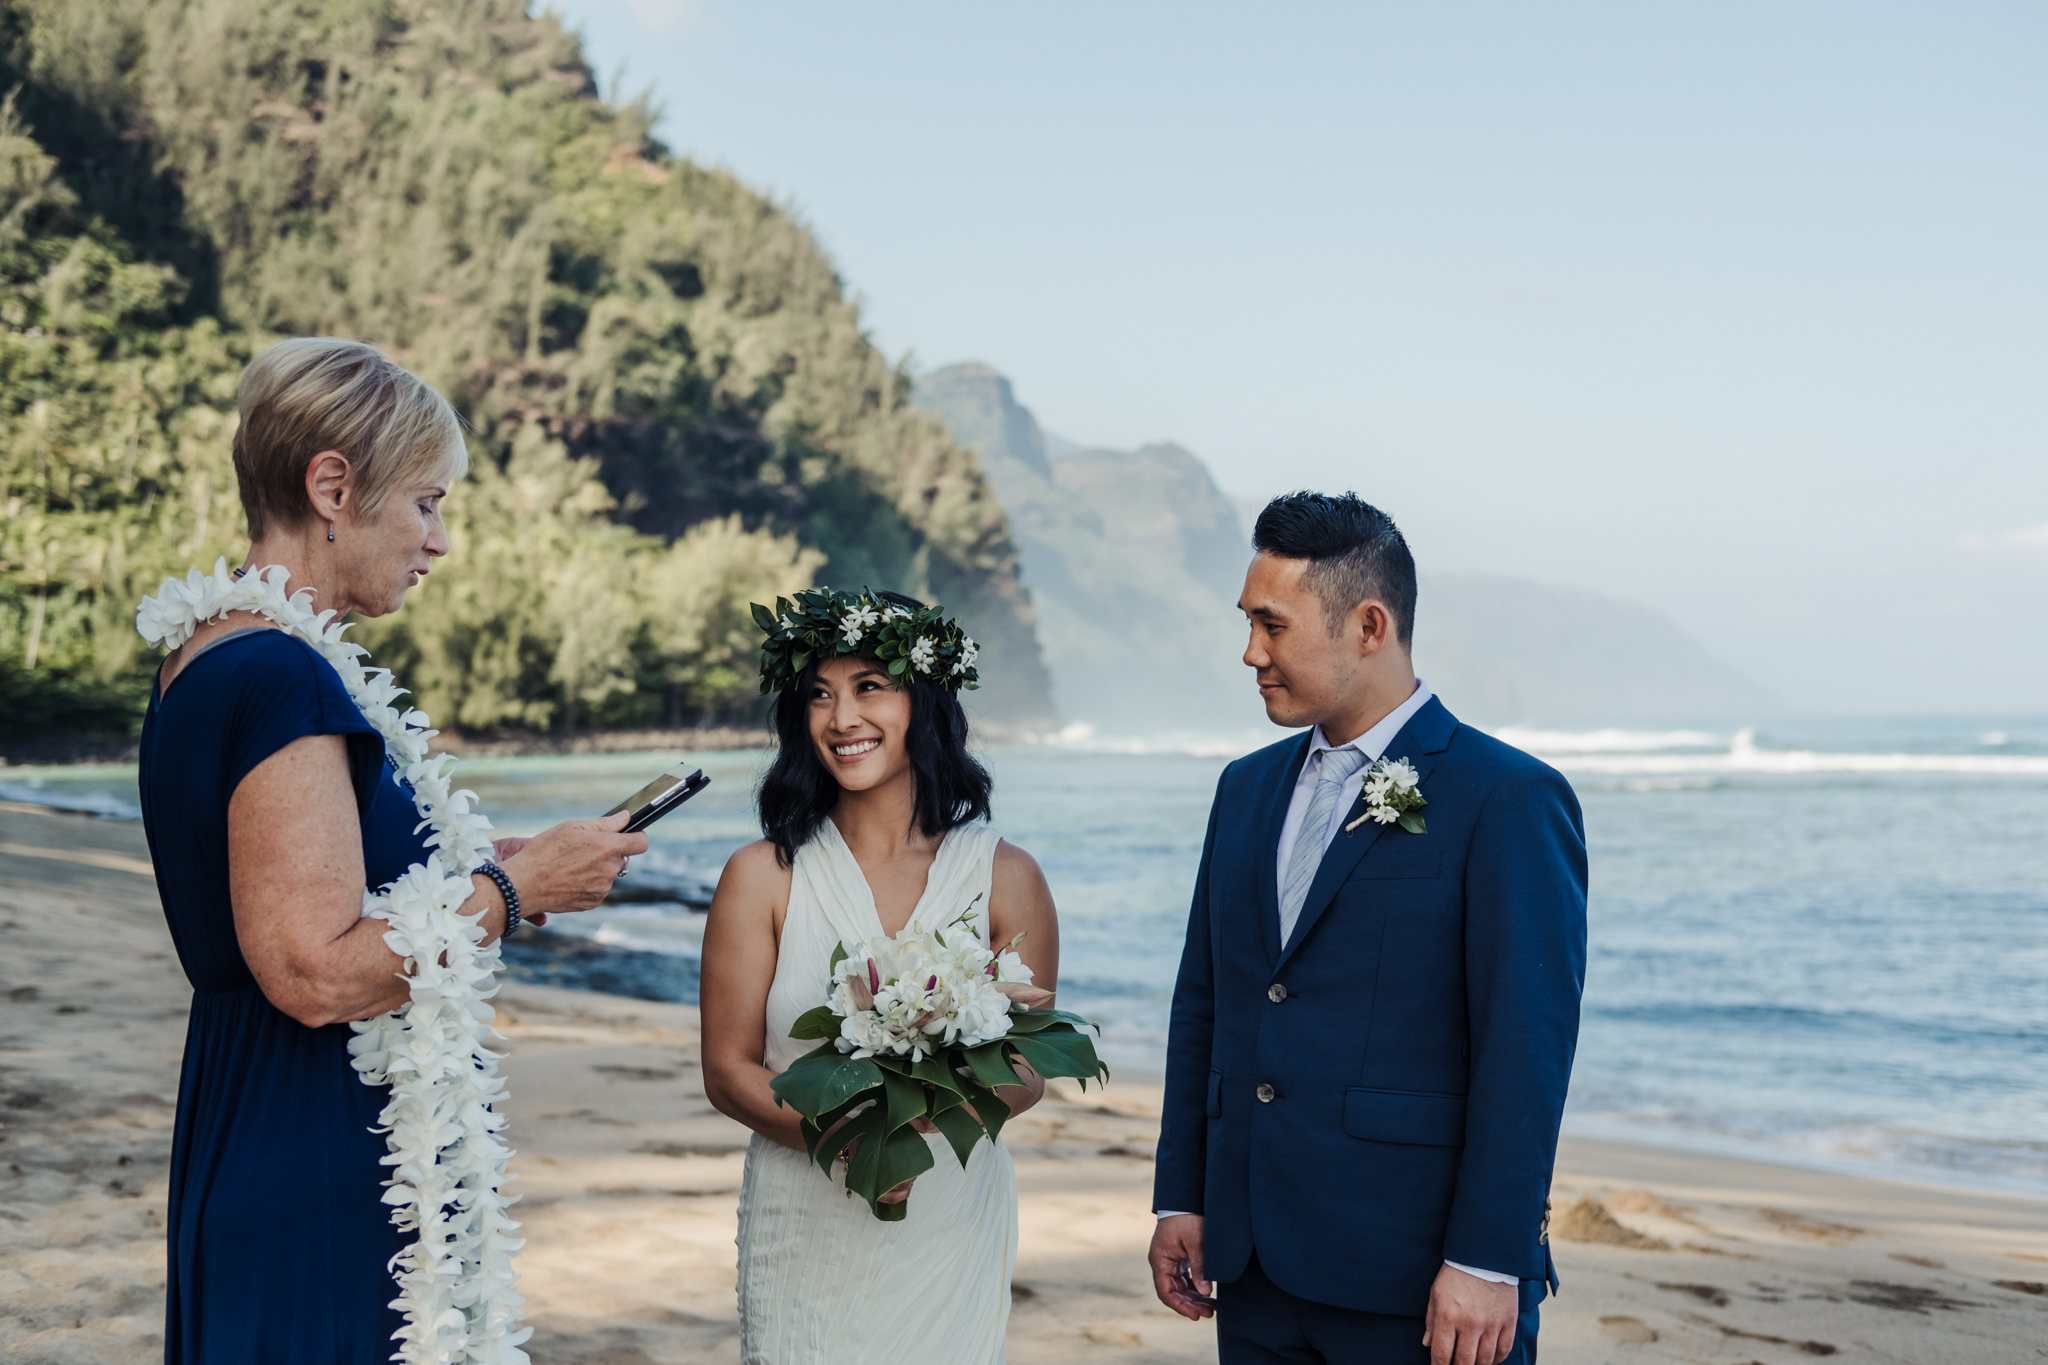 Hawaiian beach wedding ceremony